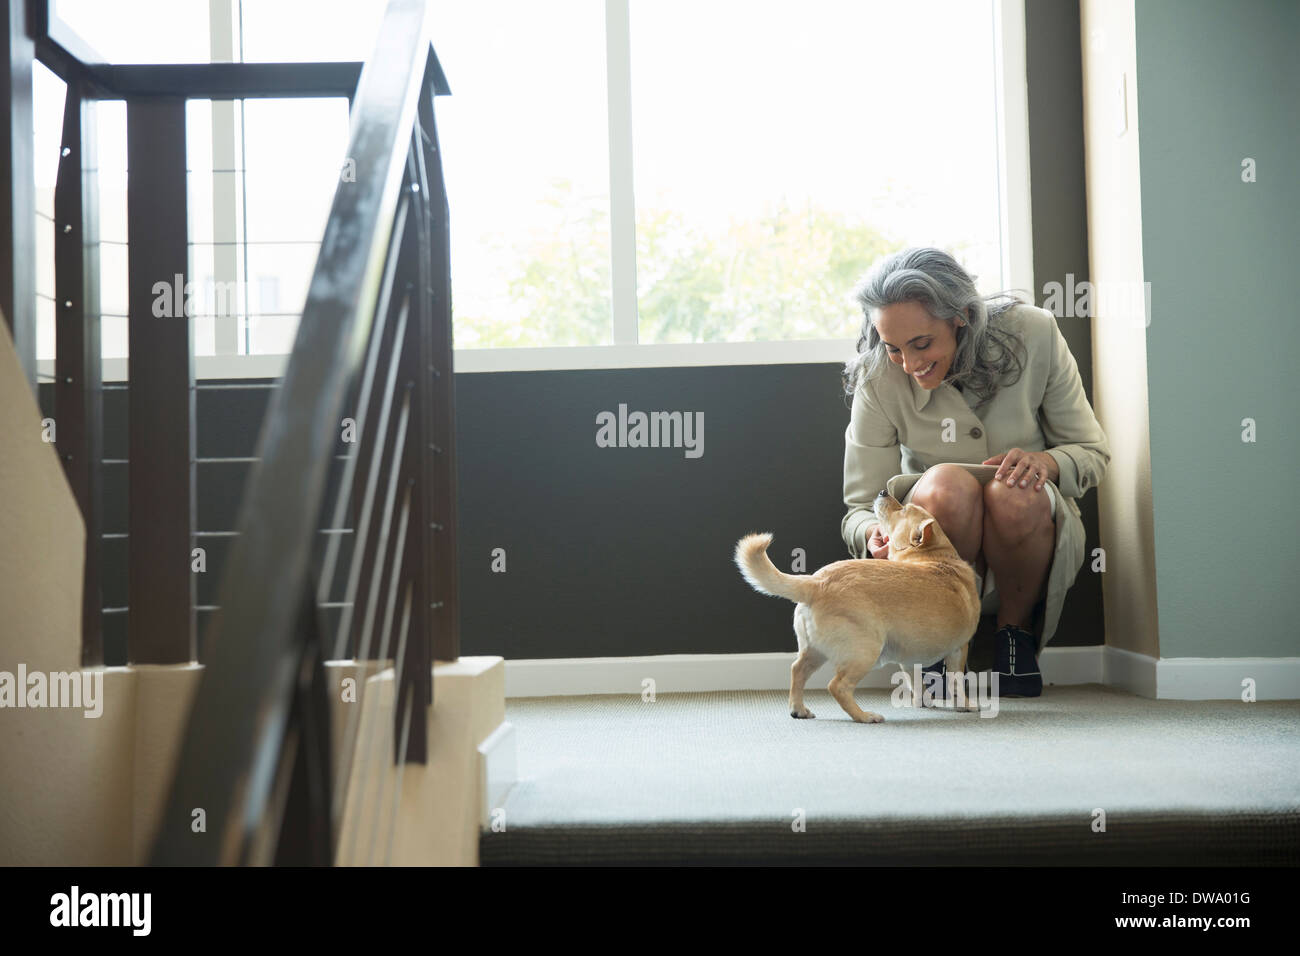 Mature woman petting her dog on stairwell Stock Photo